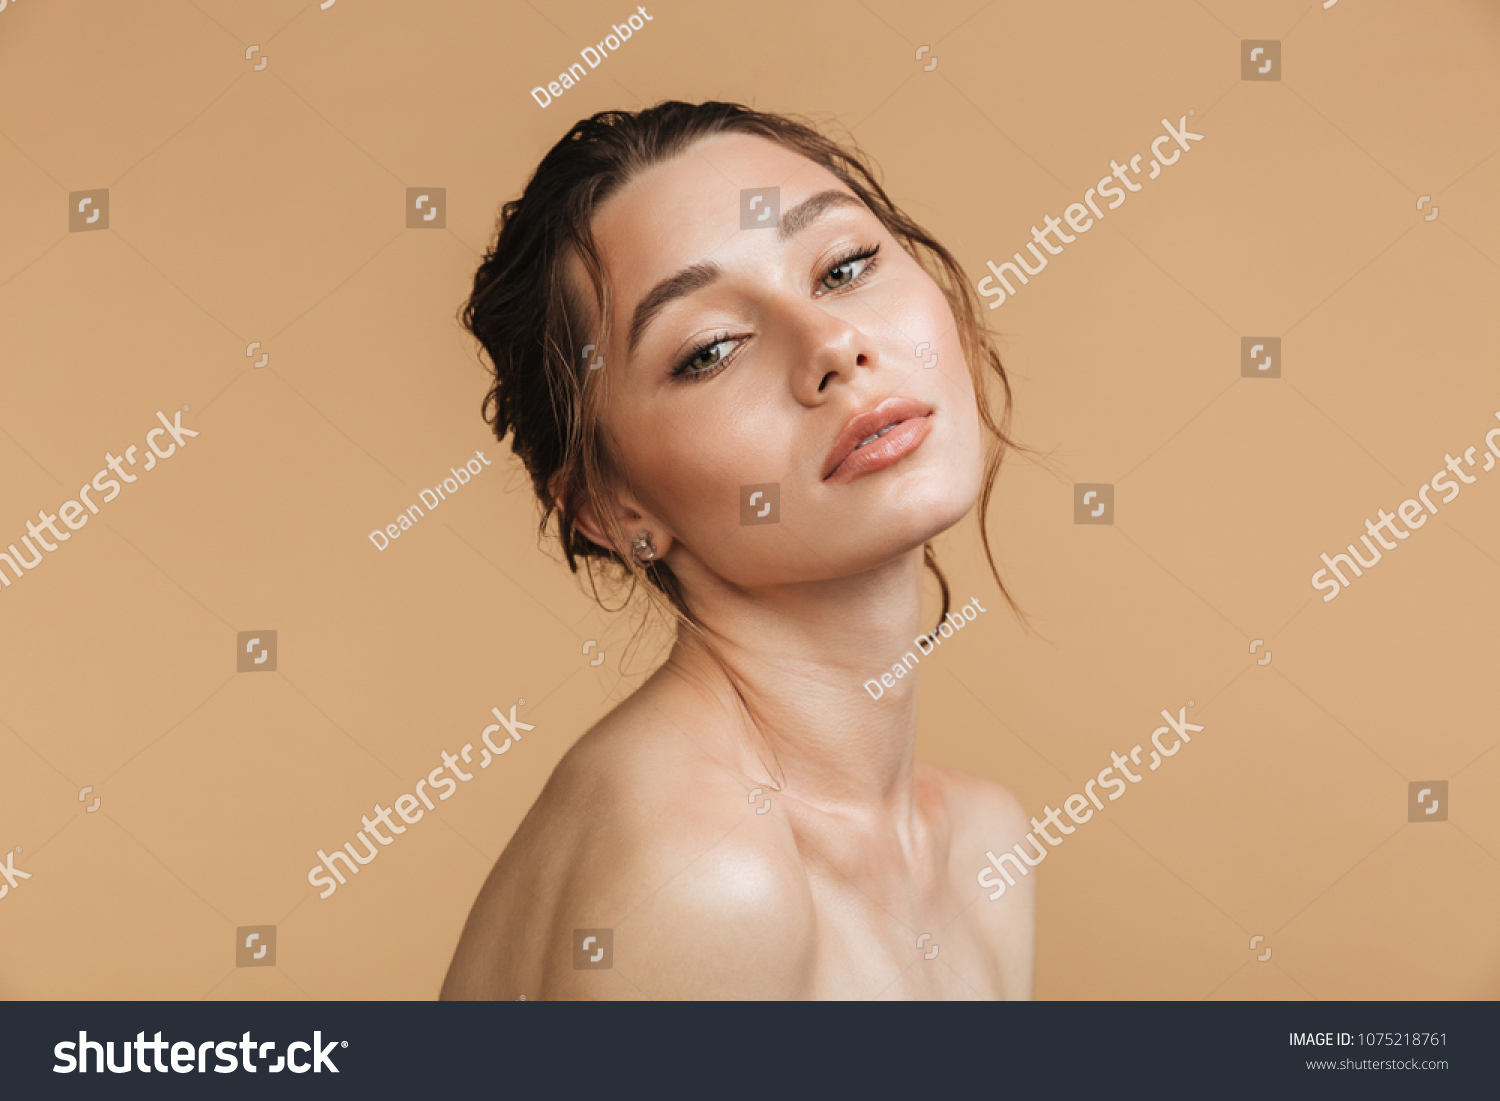 Image of young pure beautiful gentle woman standing naked isolated looking  camera.